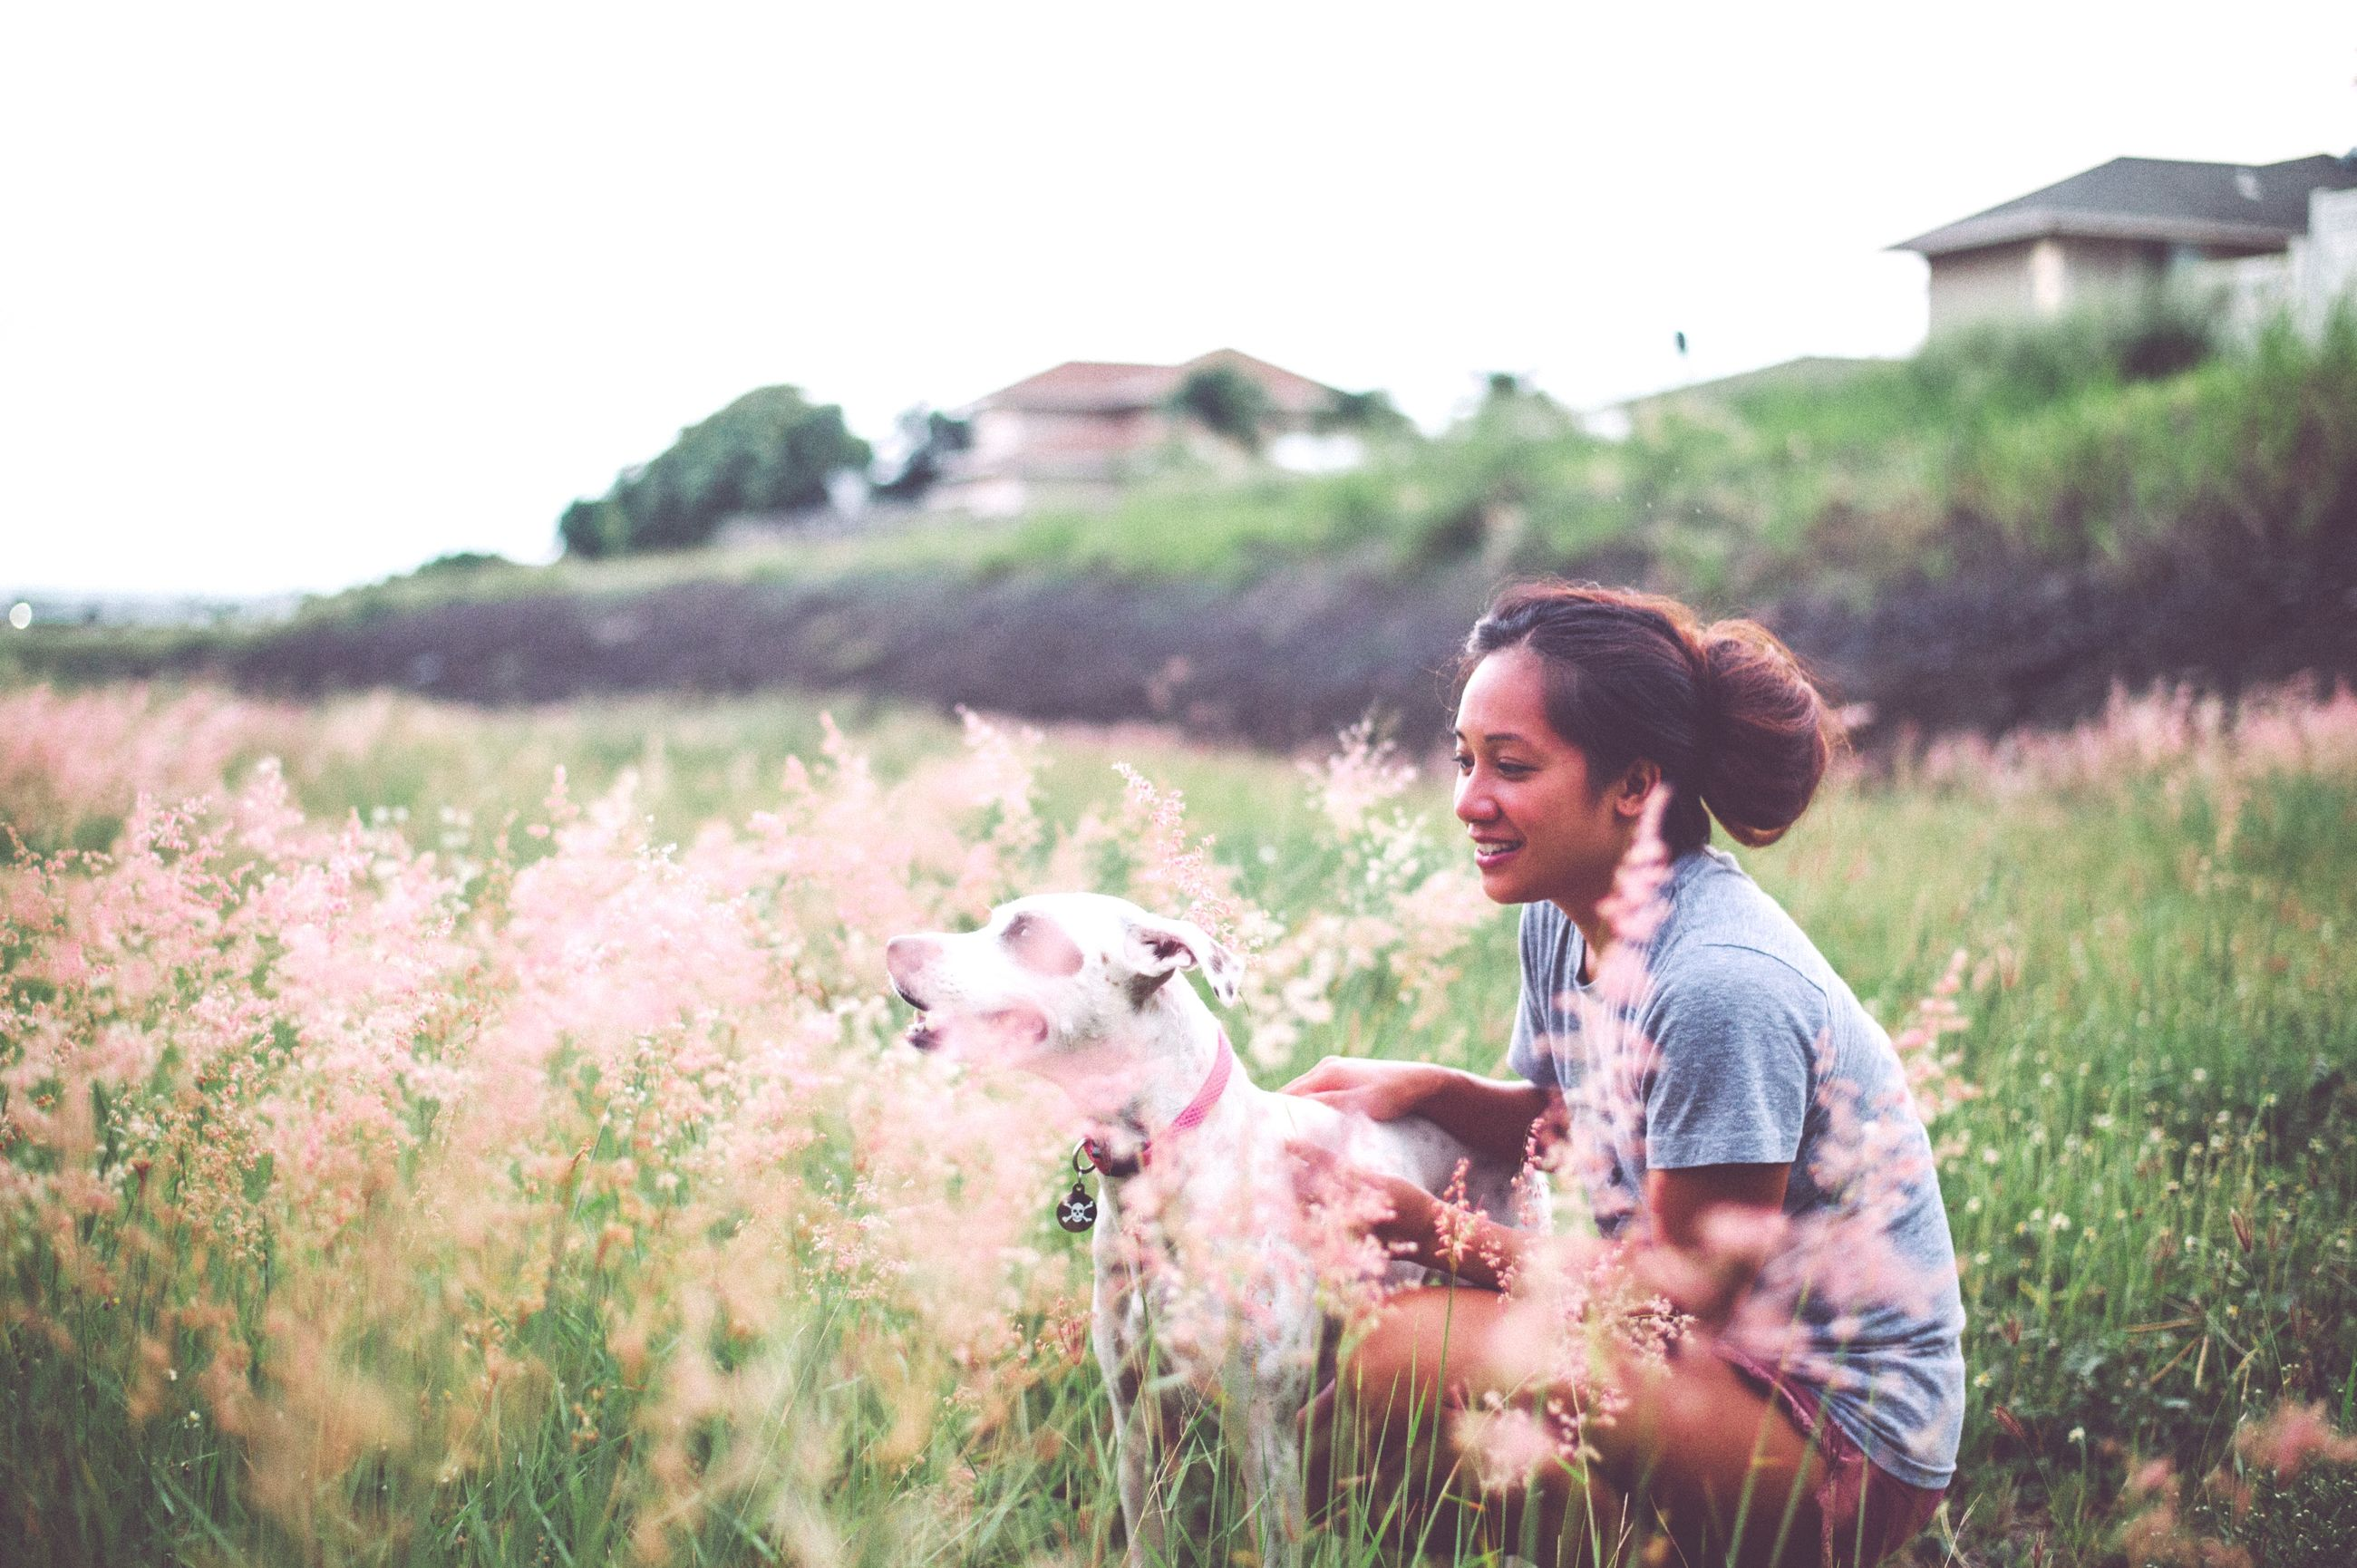 field, grass, person, young adult, lifestyles, casual clothing, leisure activity, looking at camera, standing, portrait, young women, landscape, smiling, clear sky, three quarter length, grassy, happiness, front view